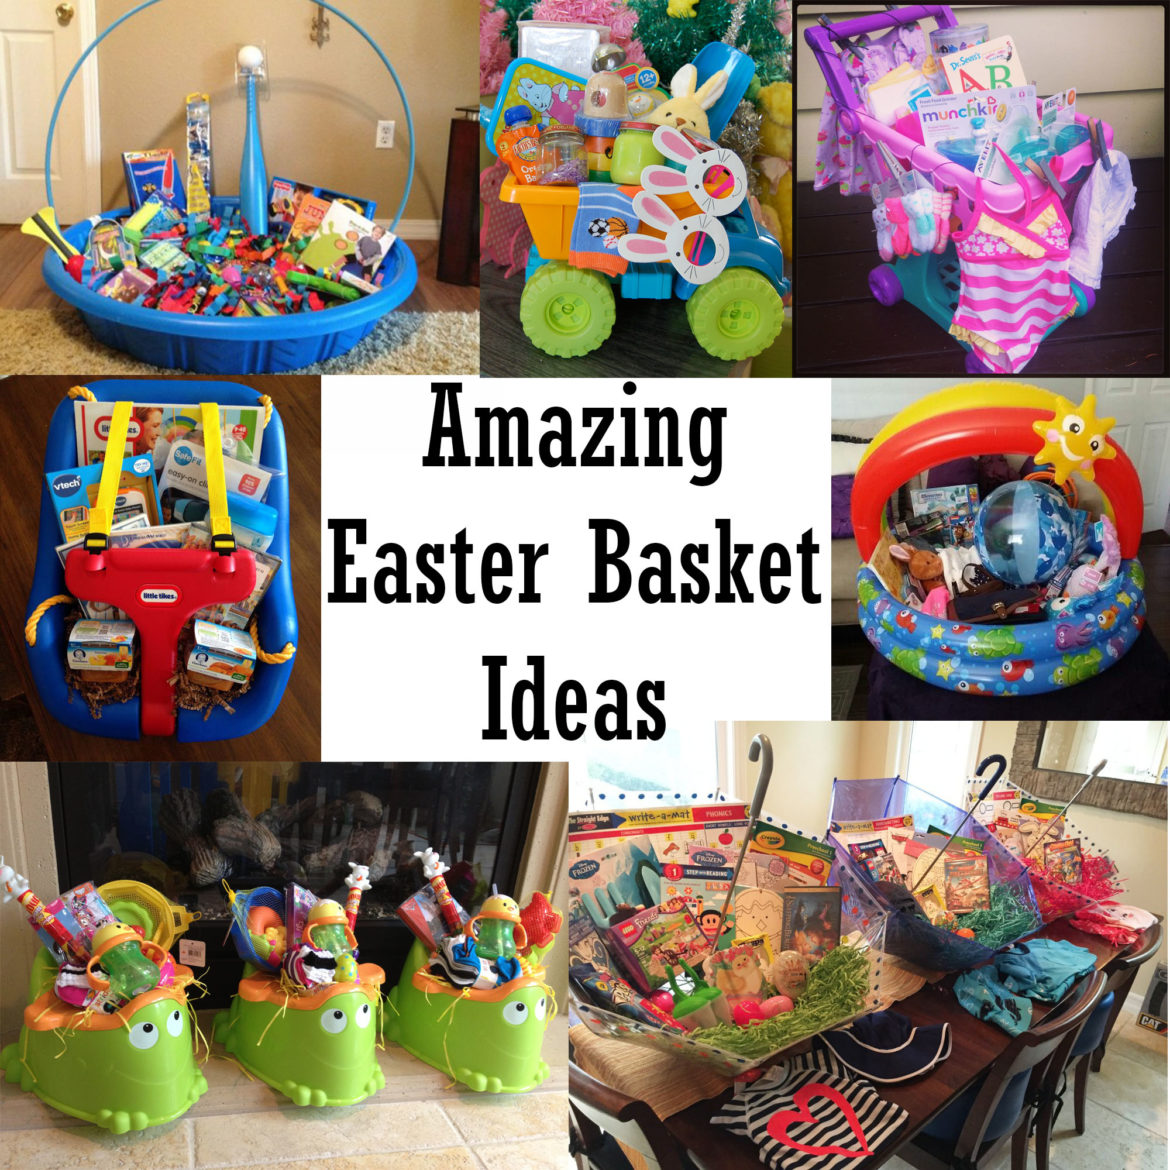 Amazing Easter Basket Ideas